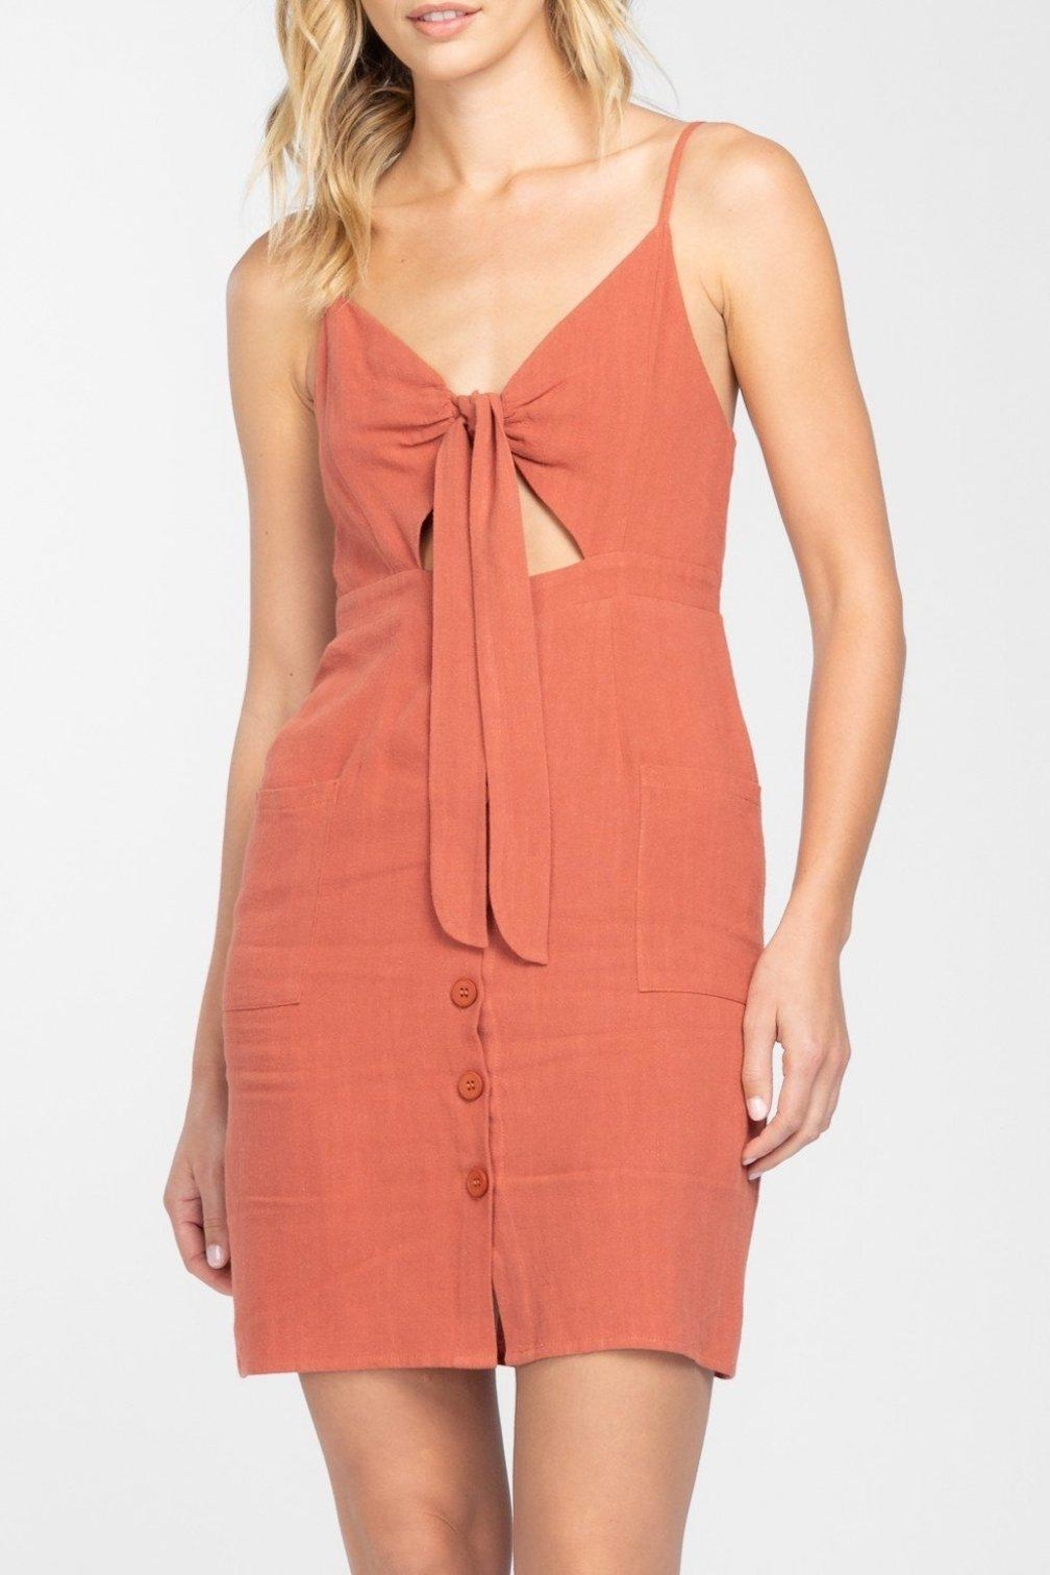 Everly Button Front-Tie Mini-Dress - Back Cropped Image